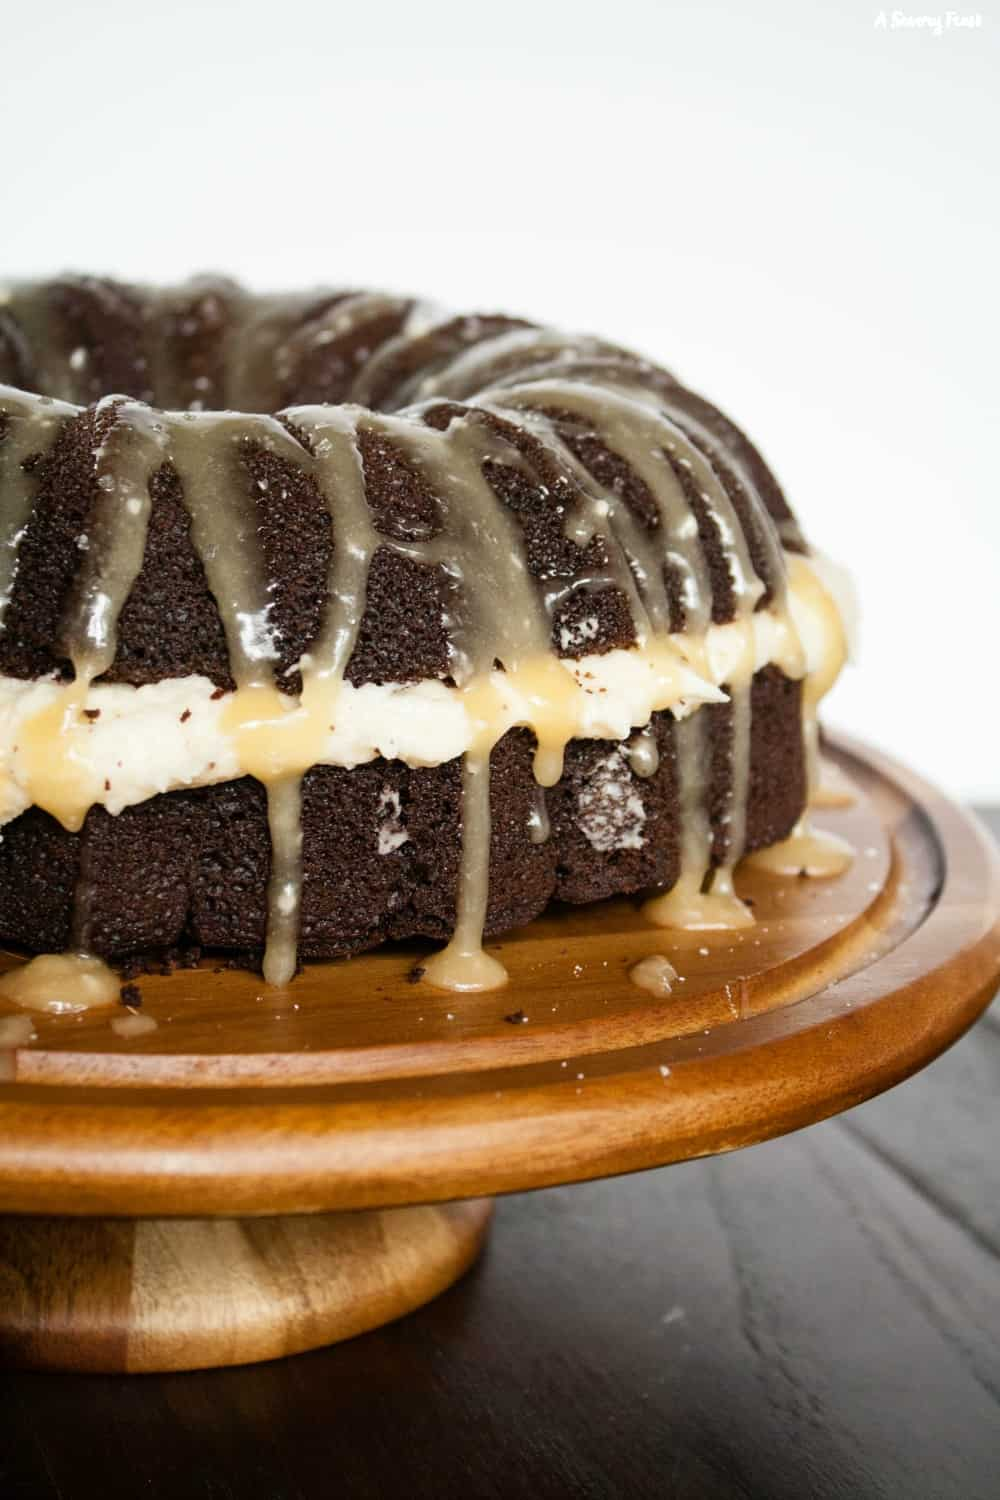 Salted Caramel Chocolate Bundt Cake is a stunning dessert for any occasion.